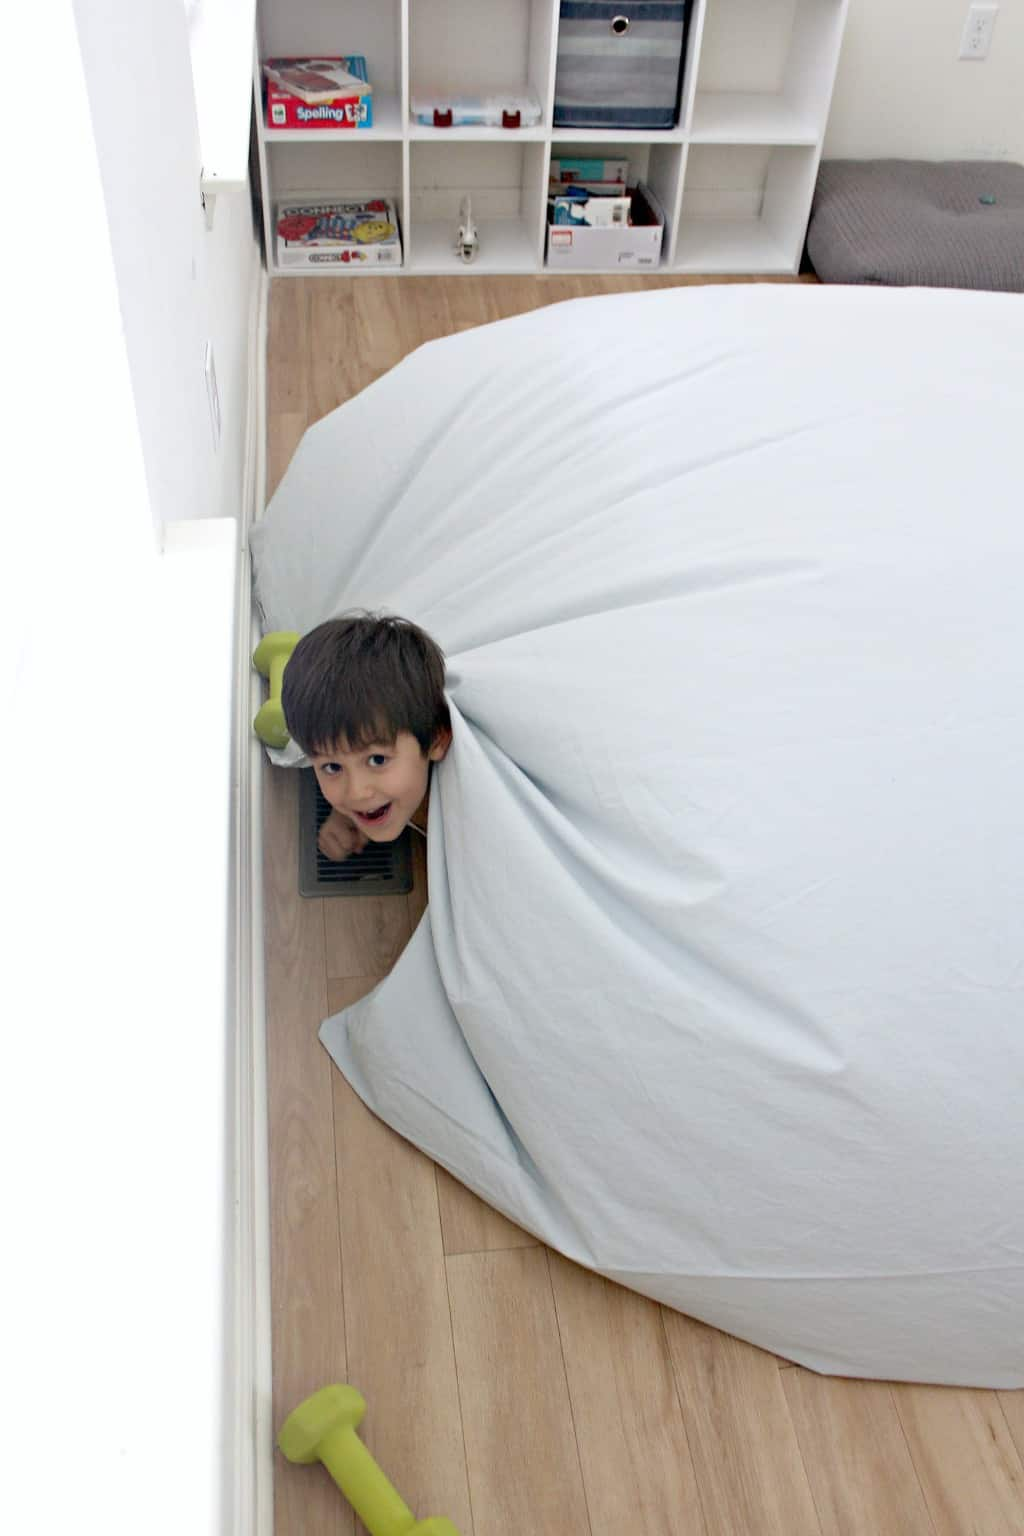 A boy peeking out from under an air fort.